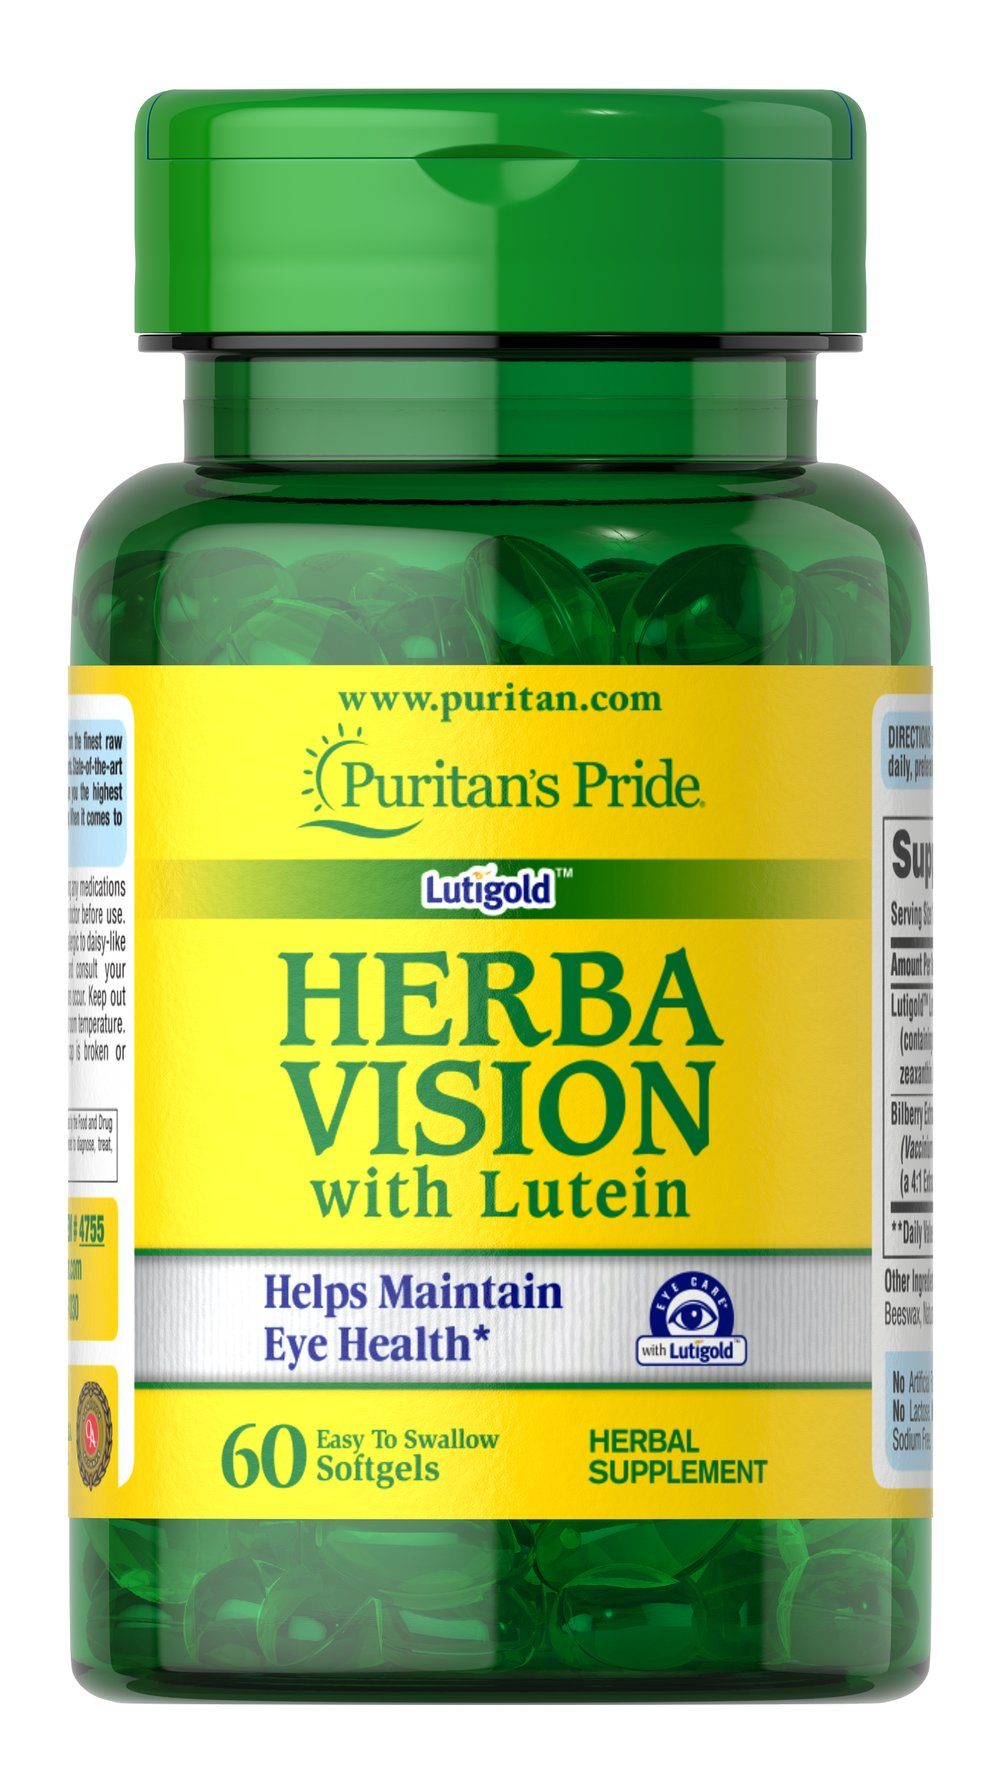 Herbavision with Lutein and Bilberry <p><strong></strong></p><p>Formulated with Lutigold™Lutein, which is derived from only pure, natural sources.<br />Lutigold™ has never been synthesized in a lab and is a non-genetically modified source of Lutein.  As we age, our body's natural supply of Lutein decreases, and since Lutein is not made in the body, it's important to take every day. This formula promotes healthy vision and  eye health.** As a